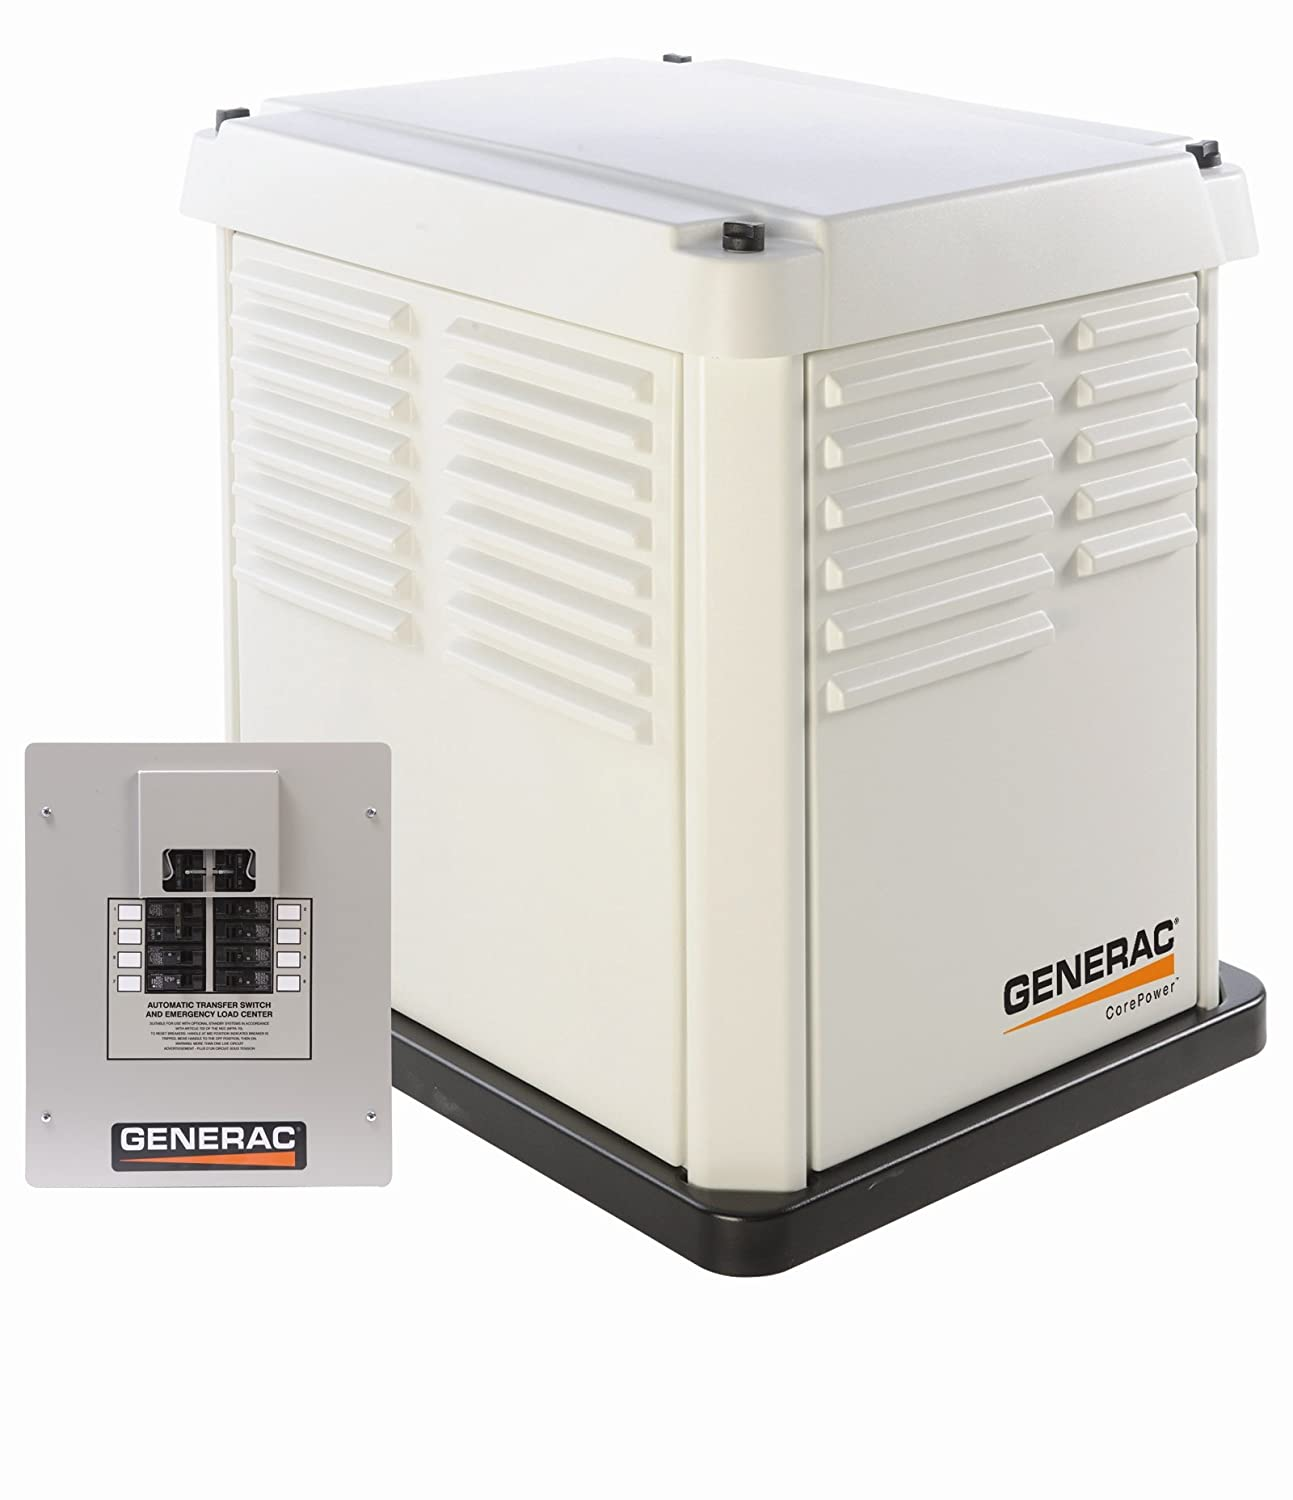 hight resolution of generac corepower 5837 w transfer switch